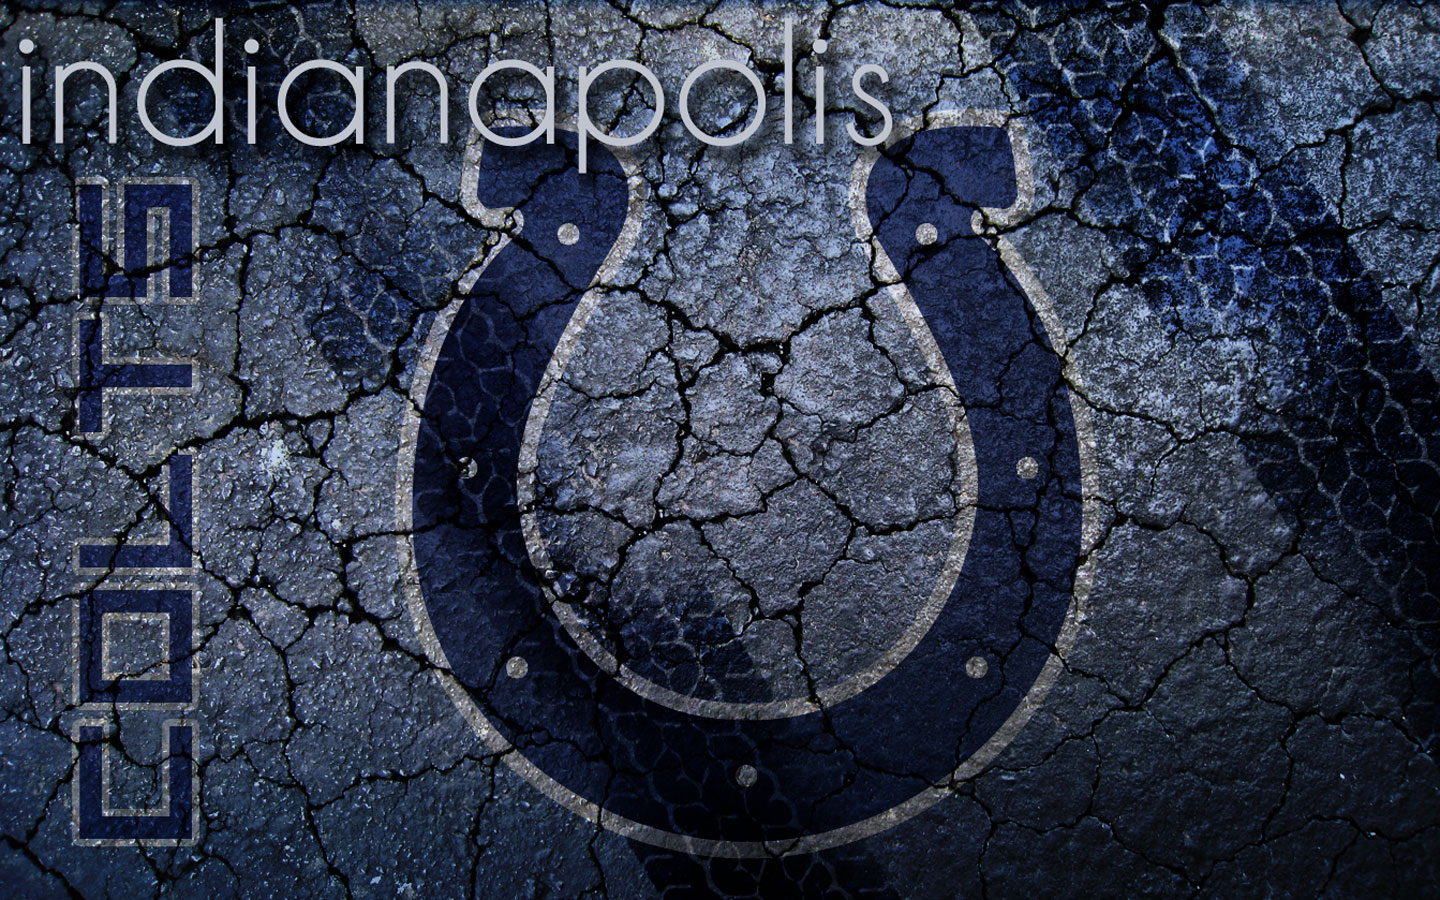 Indianapolis Colts HD desktop wallpaper